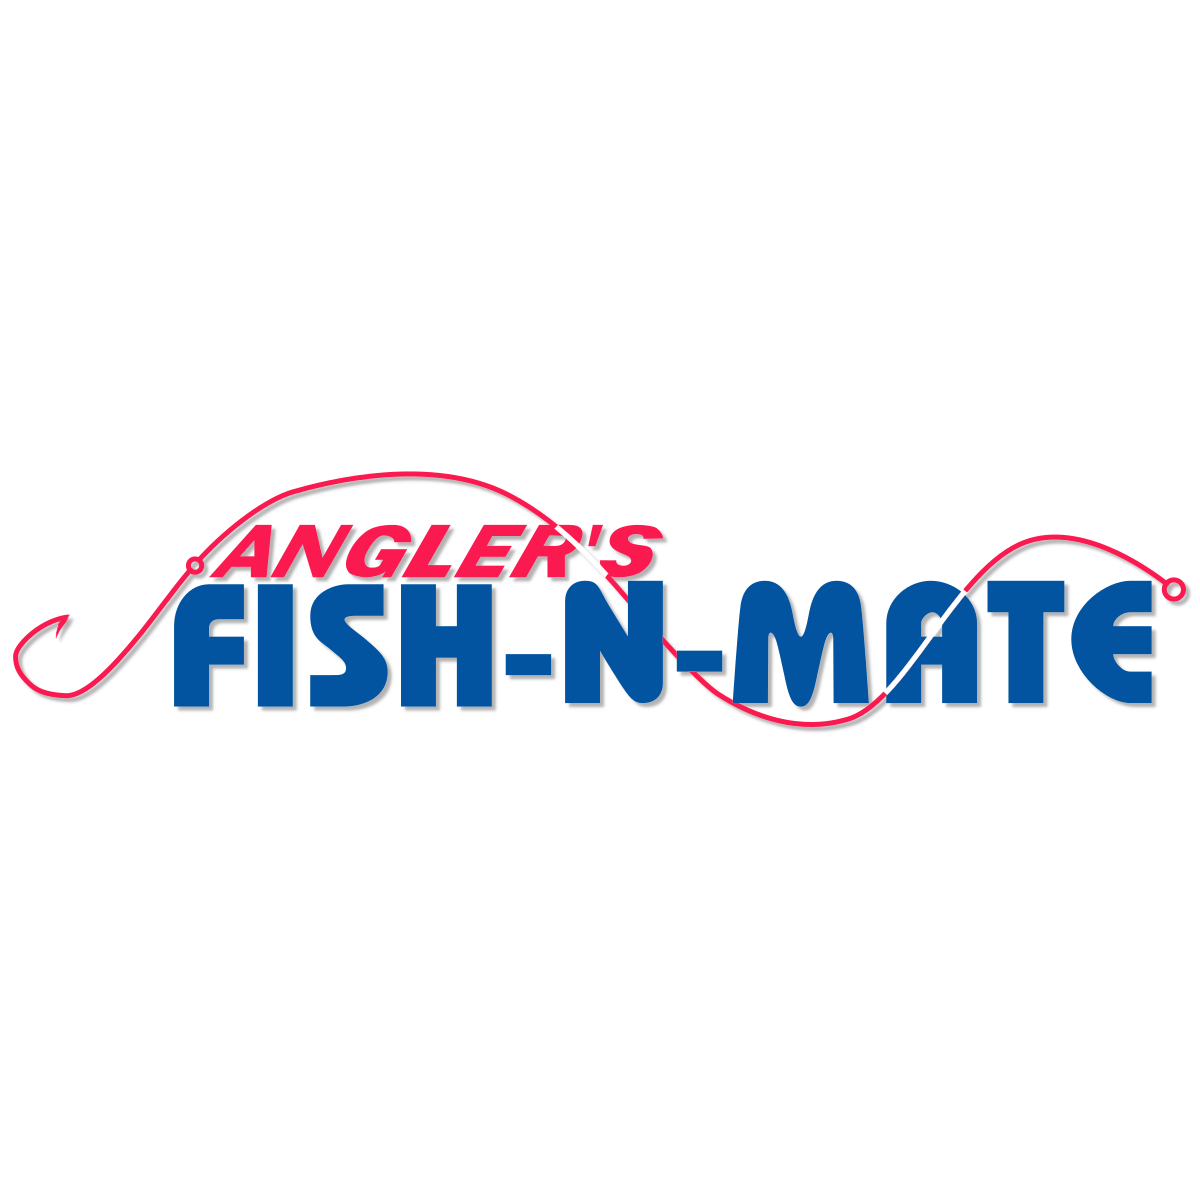 Angler's Fish-N-Mate